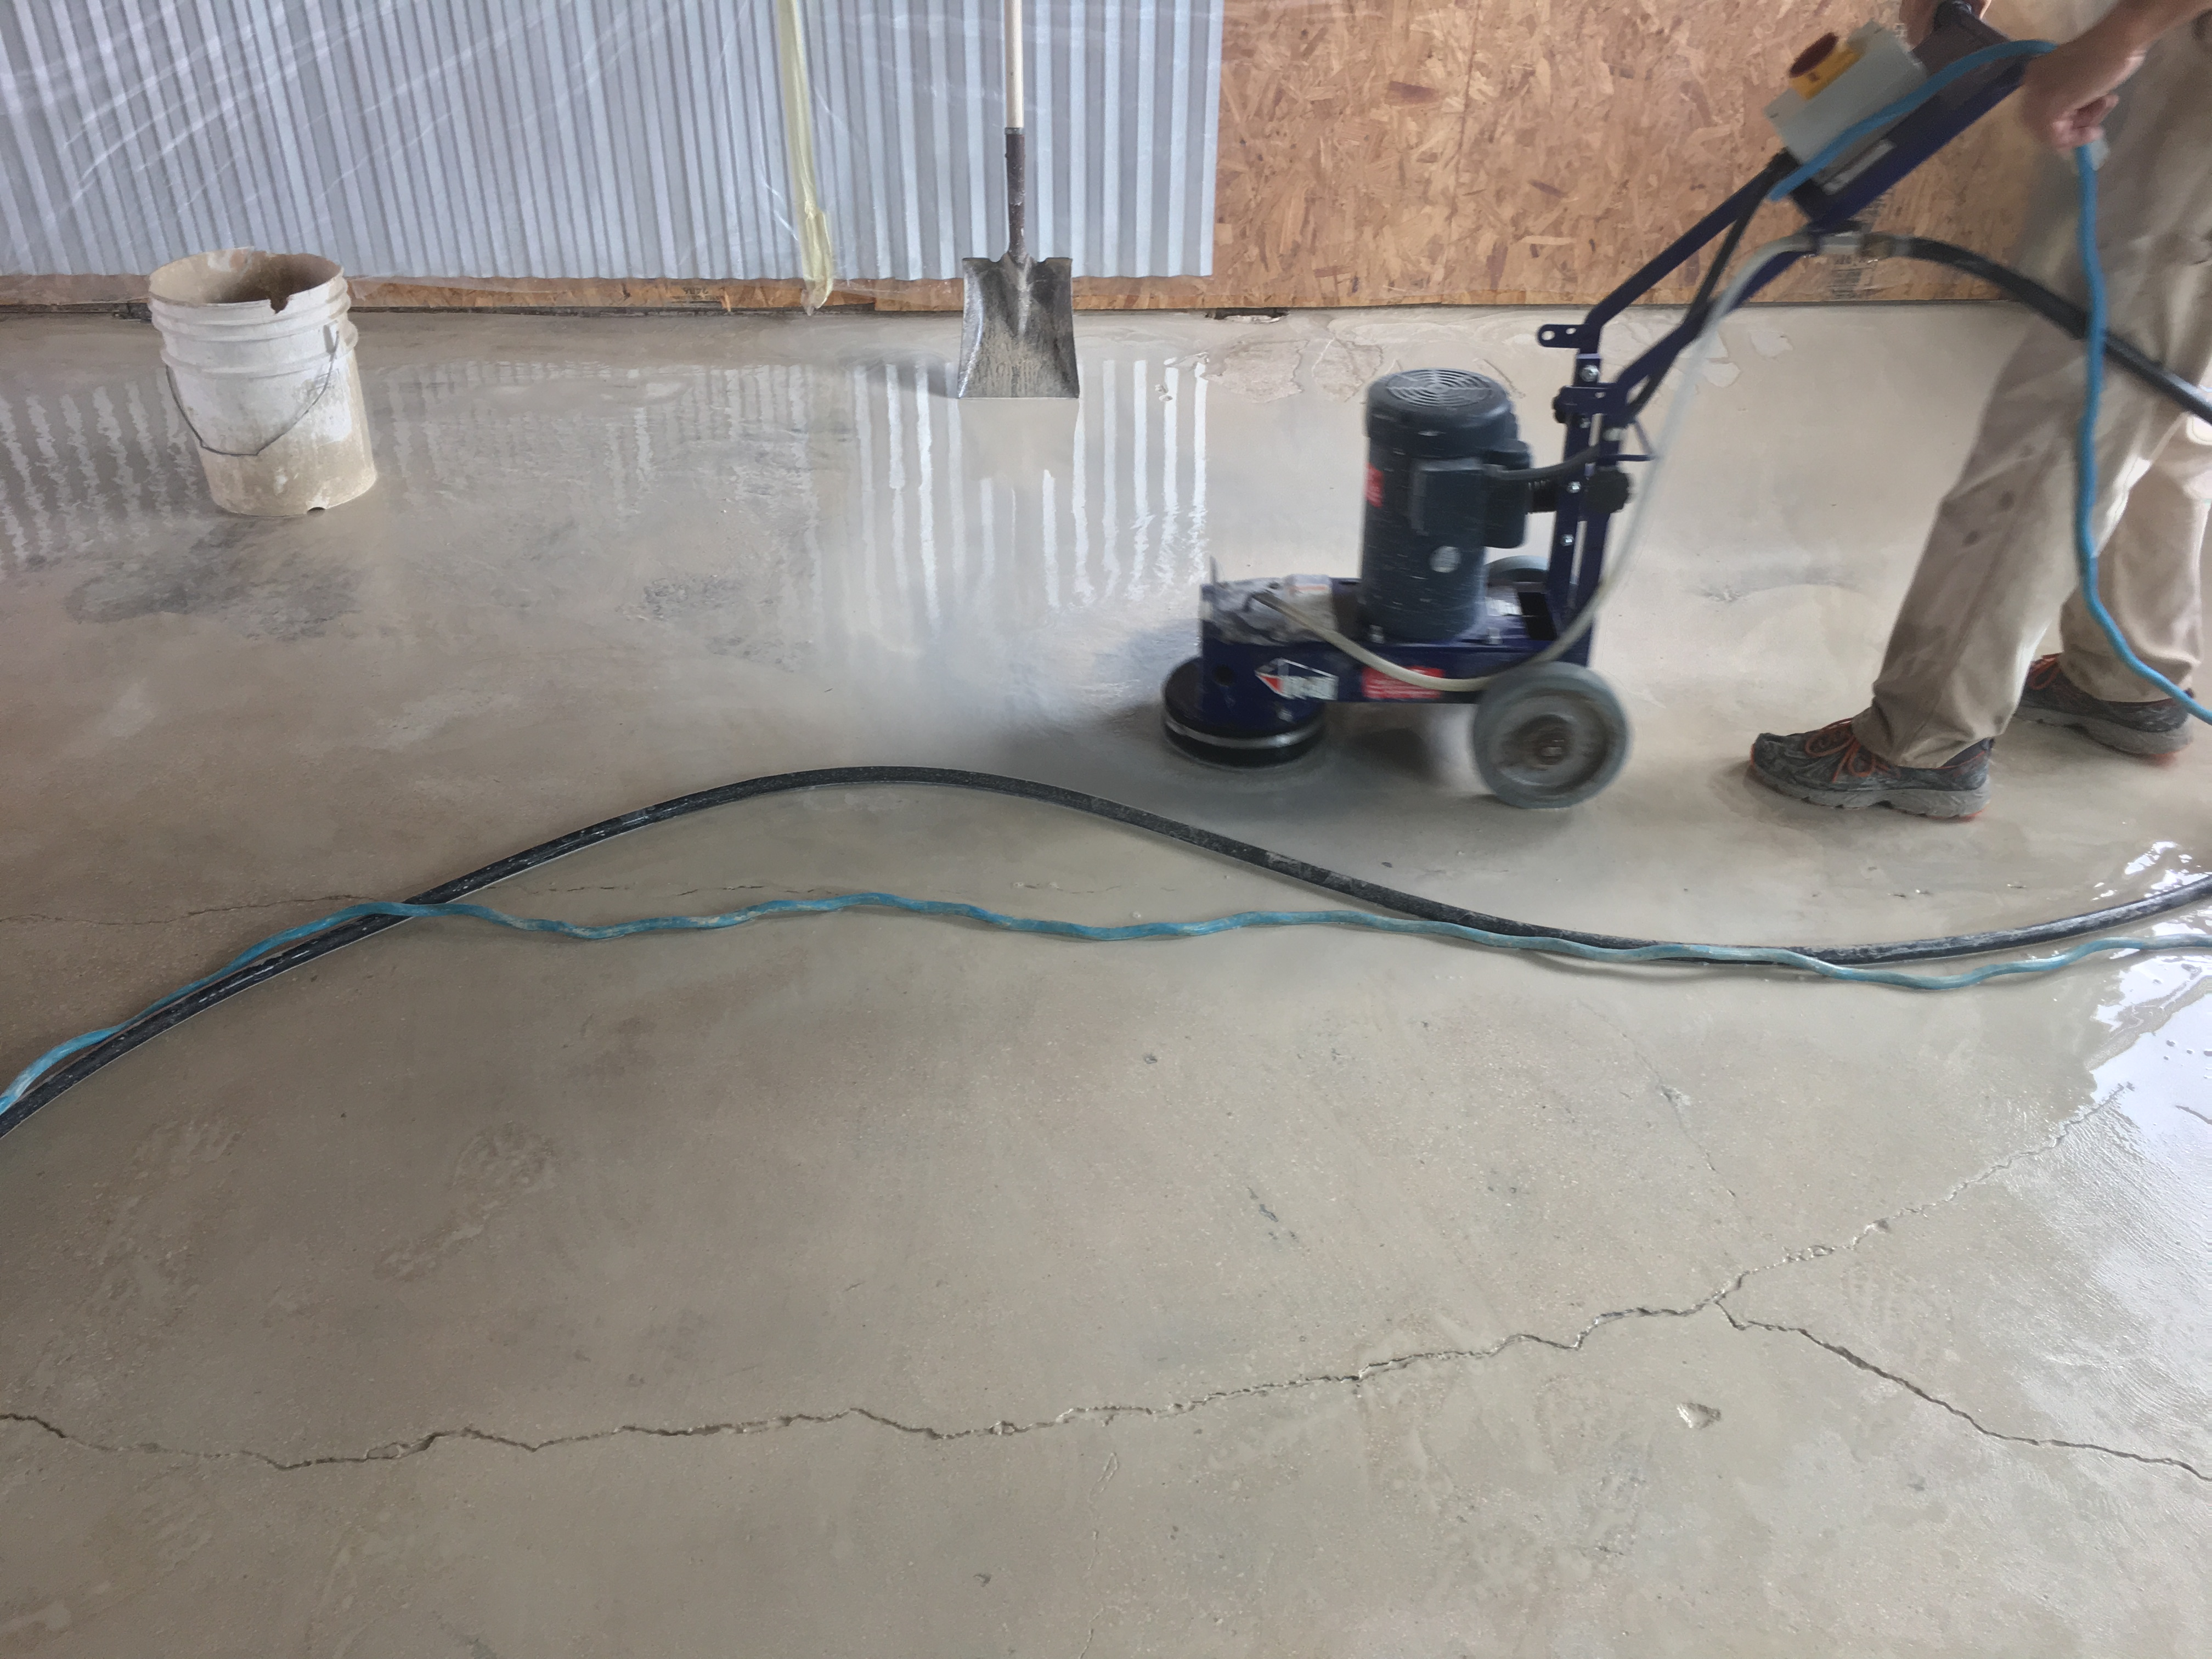 In The Next Pictures You Can See Floor Get A Nice Coat Of Stain And Then Sealer Put On It We Also Finished Cing Everything Off